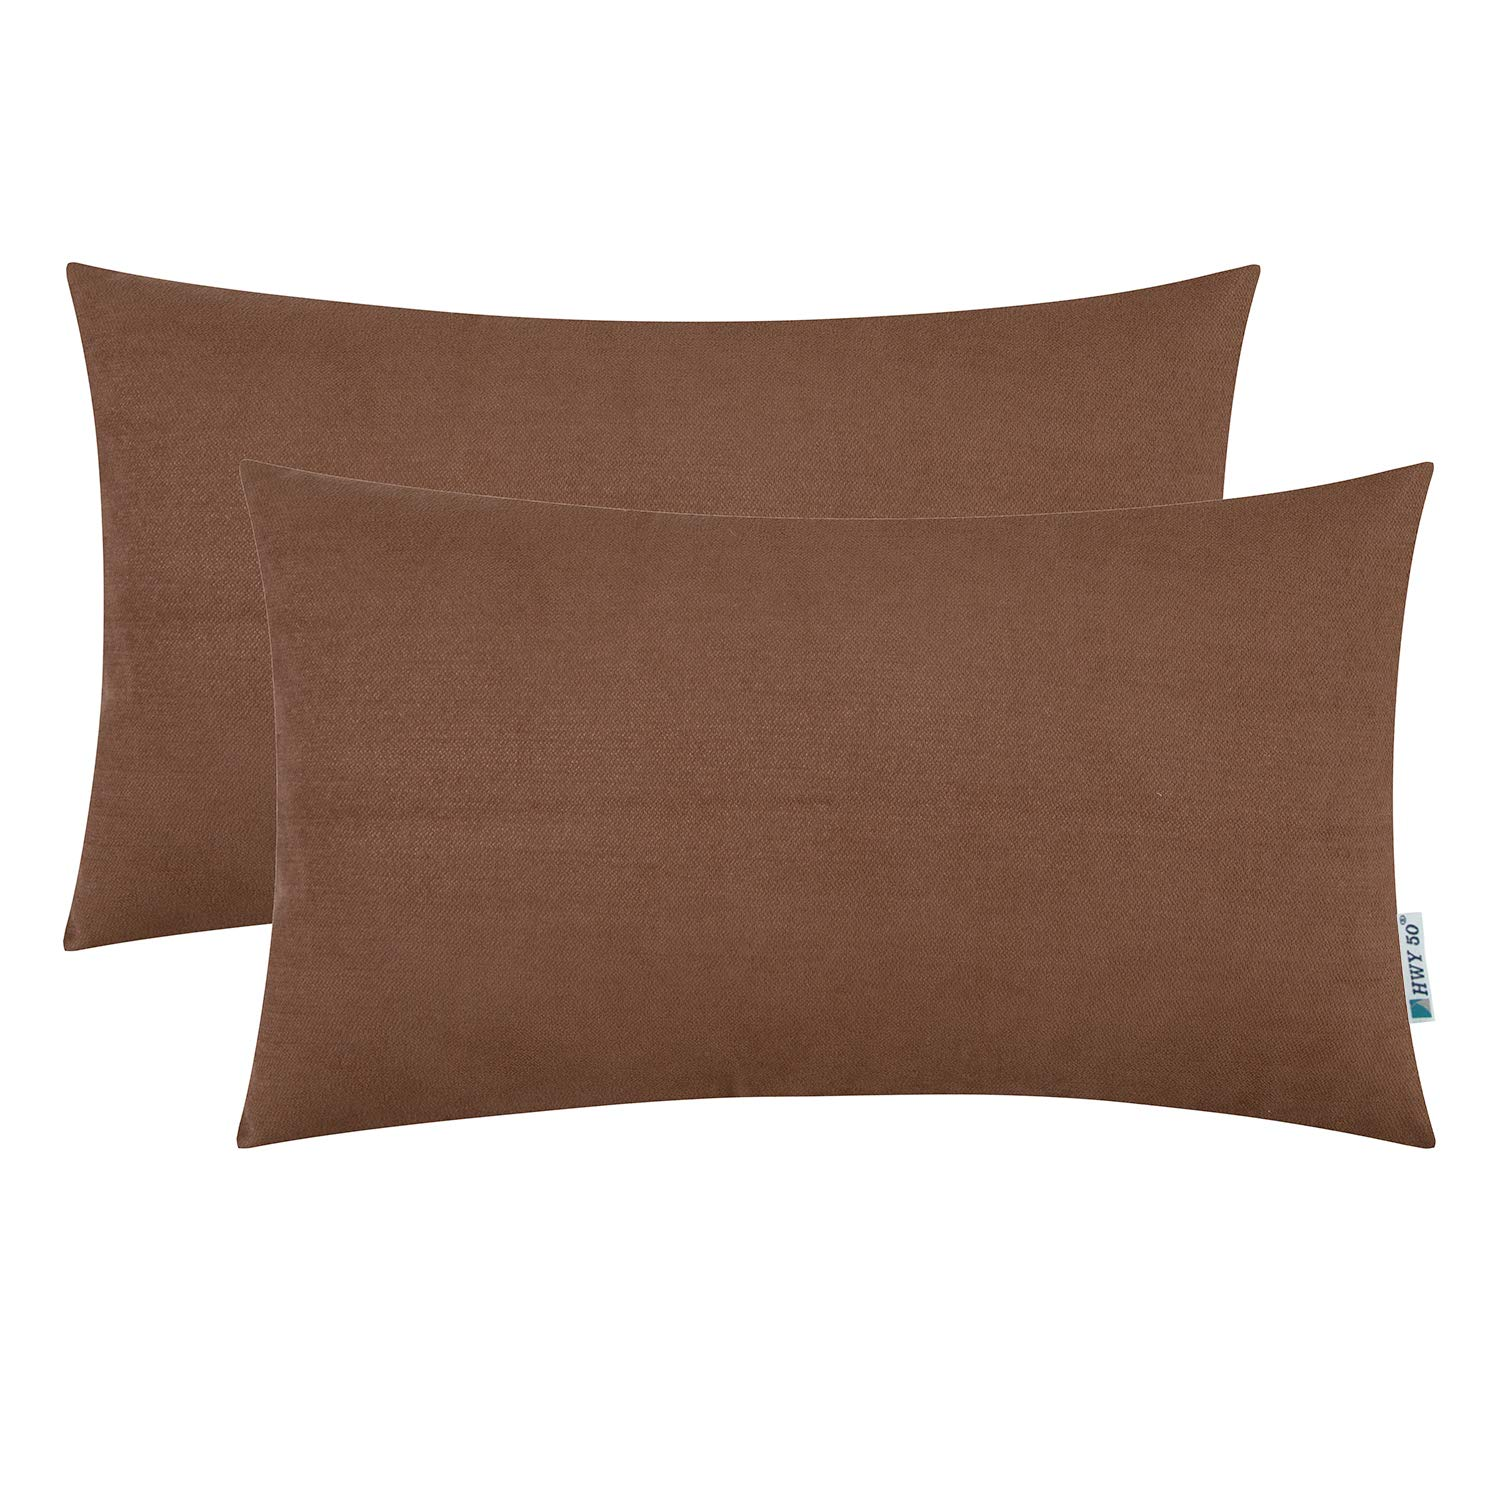 HWY 50 Coffee Soft Cozy Rectangle Decorative Throw Pillows Covers Set Cushion Cases for Couch Bed Bedroom 12 x 20 inch Chenille Pack of 2